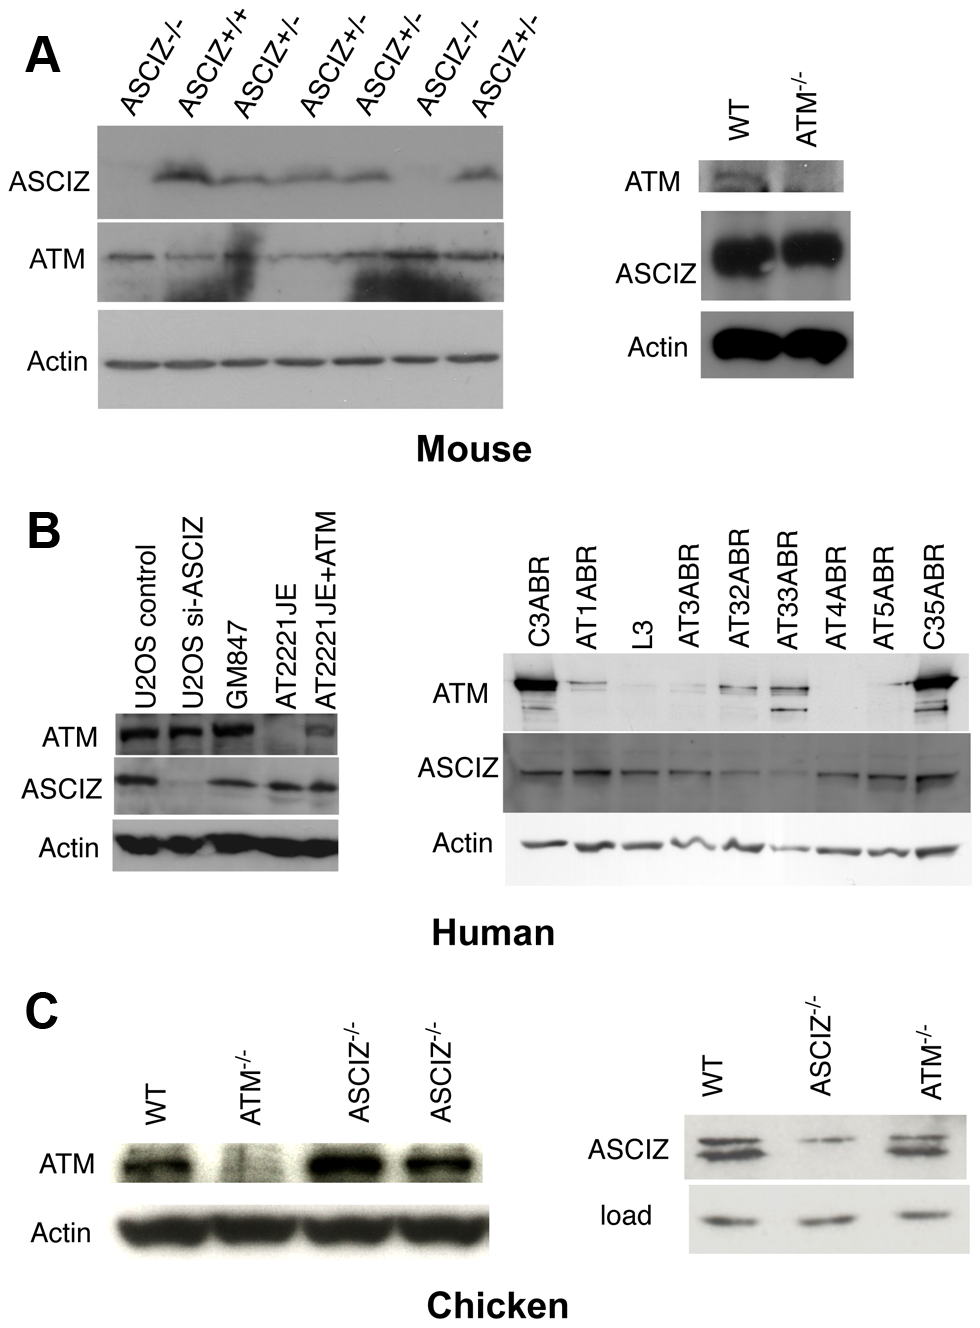 Reciprocal independence of ASCIZ and ATM protein levels.